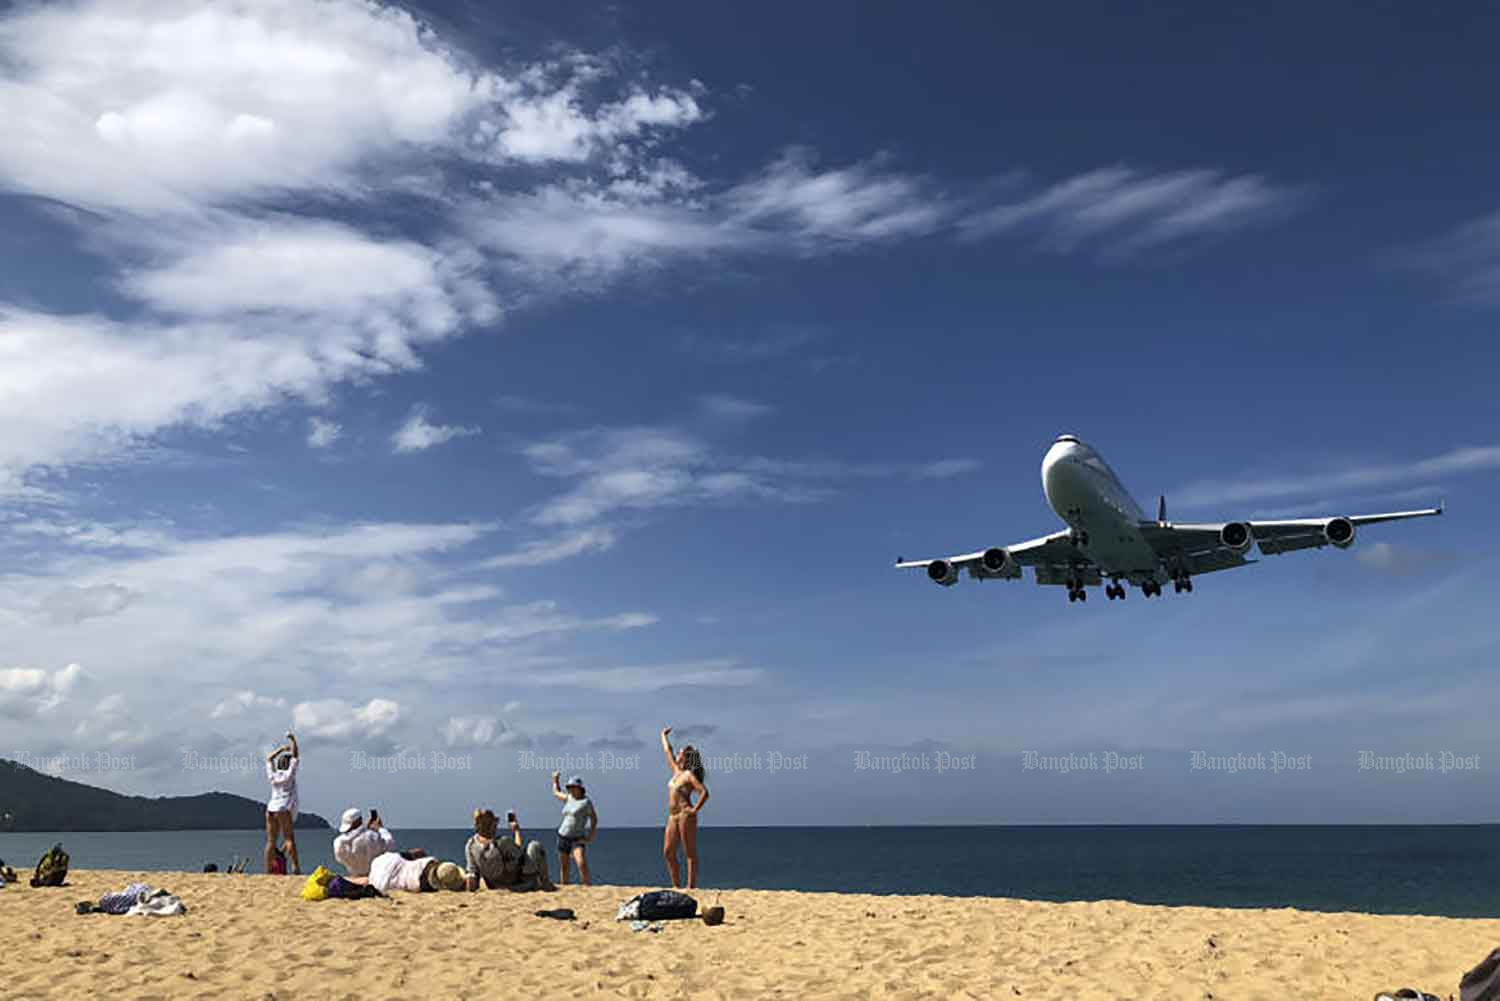 Tourists pose for pictures at Mai Khao beach in Phuket in 2019. Mai Khao beach is a popular destination for tourists looking to snap a few selfies with planes as they approach directly overhead, flying low before landing on the runway. (Bangkok Post file photo)